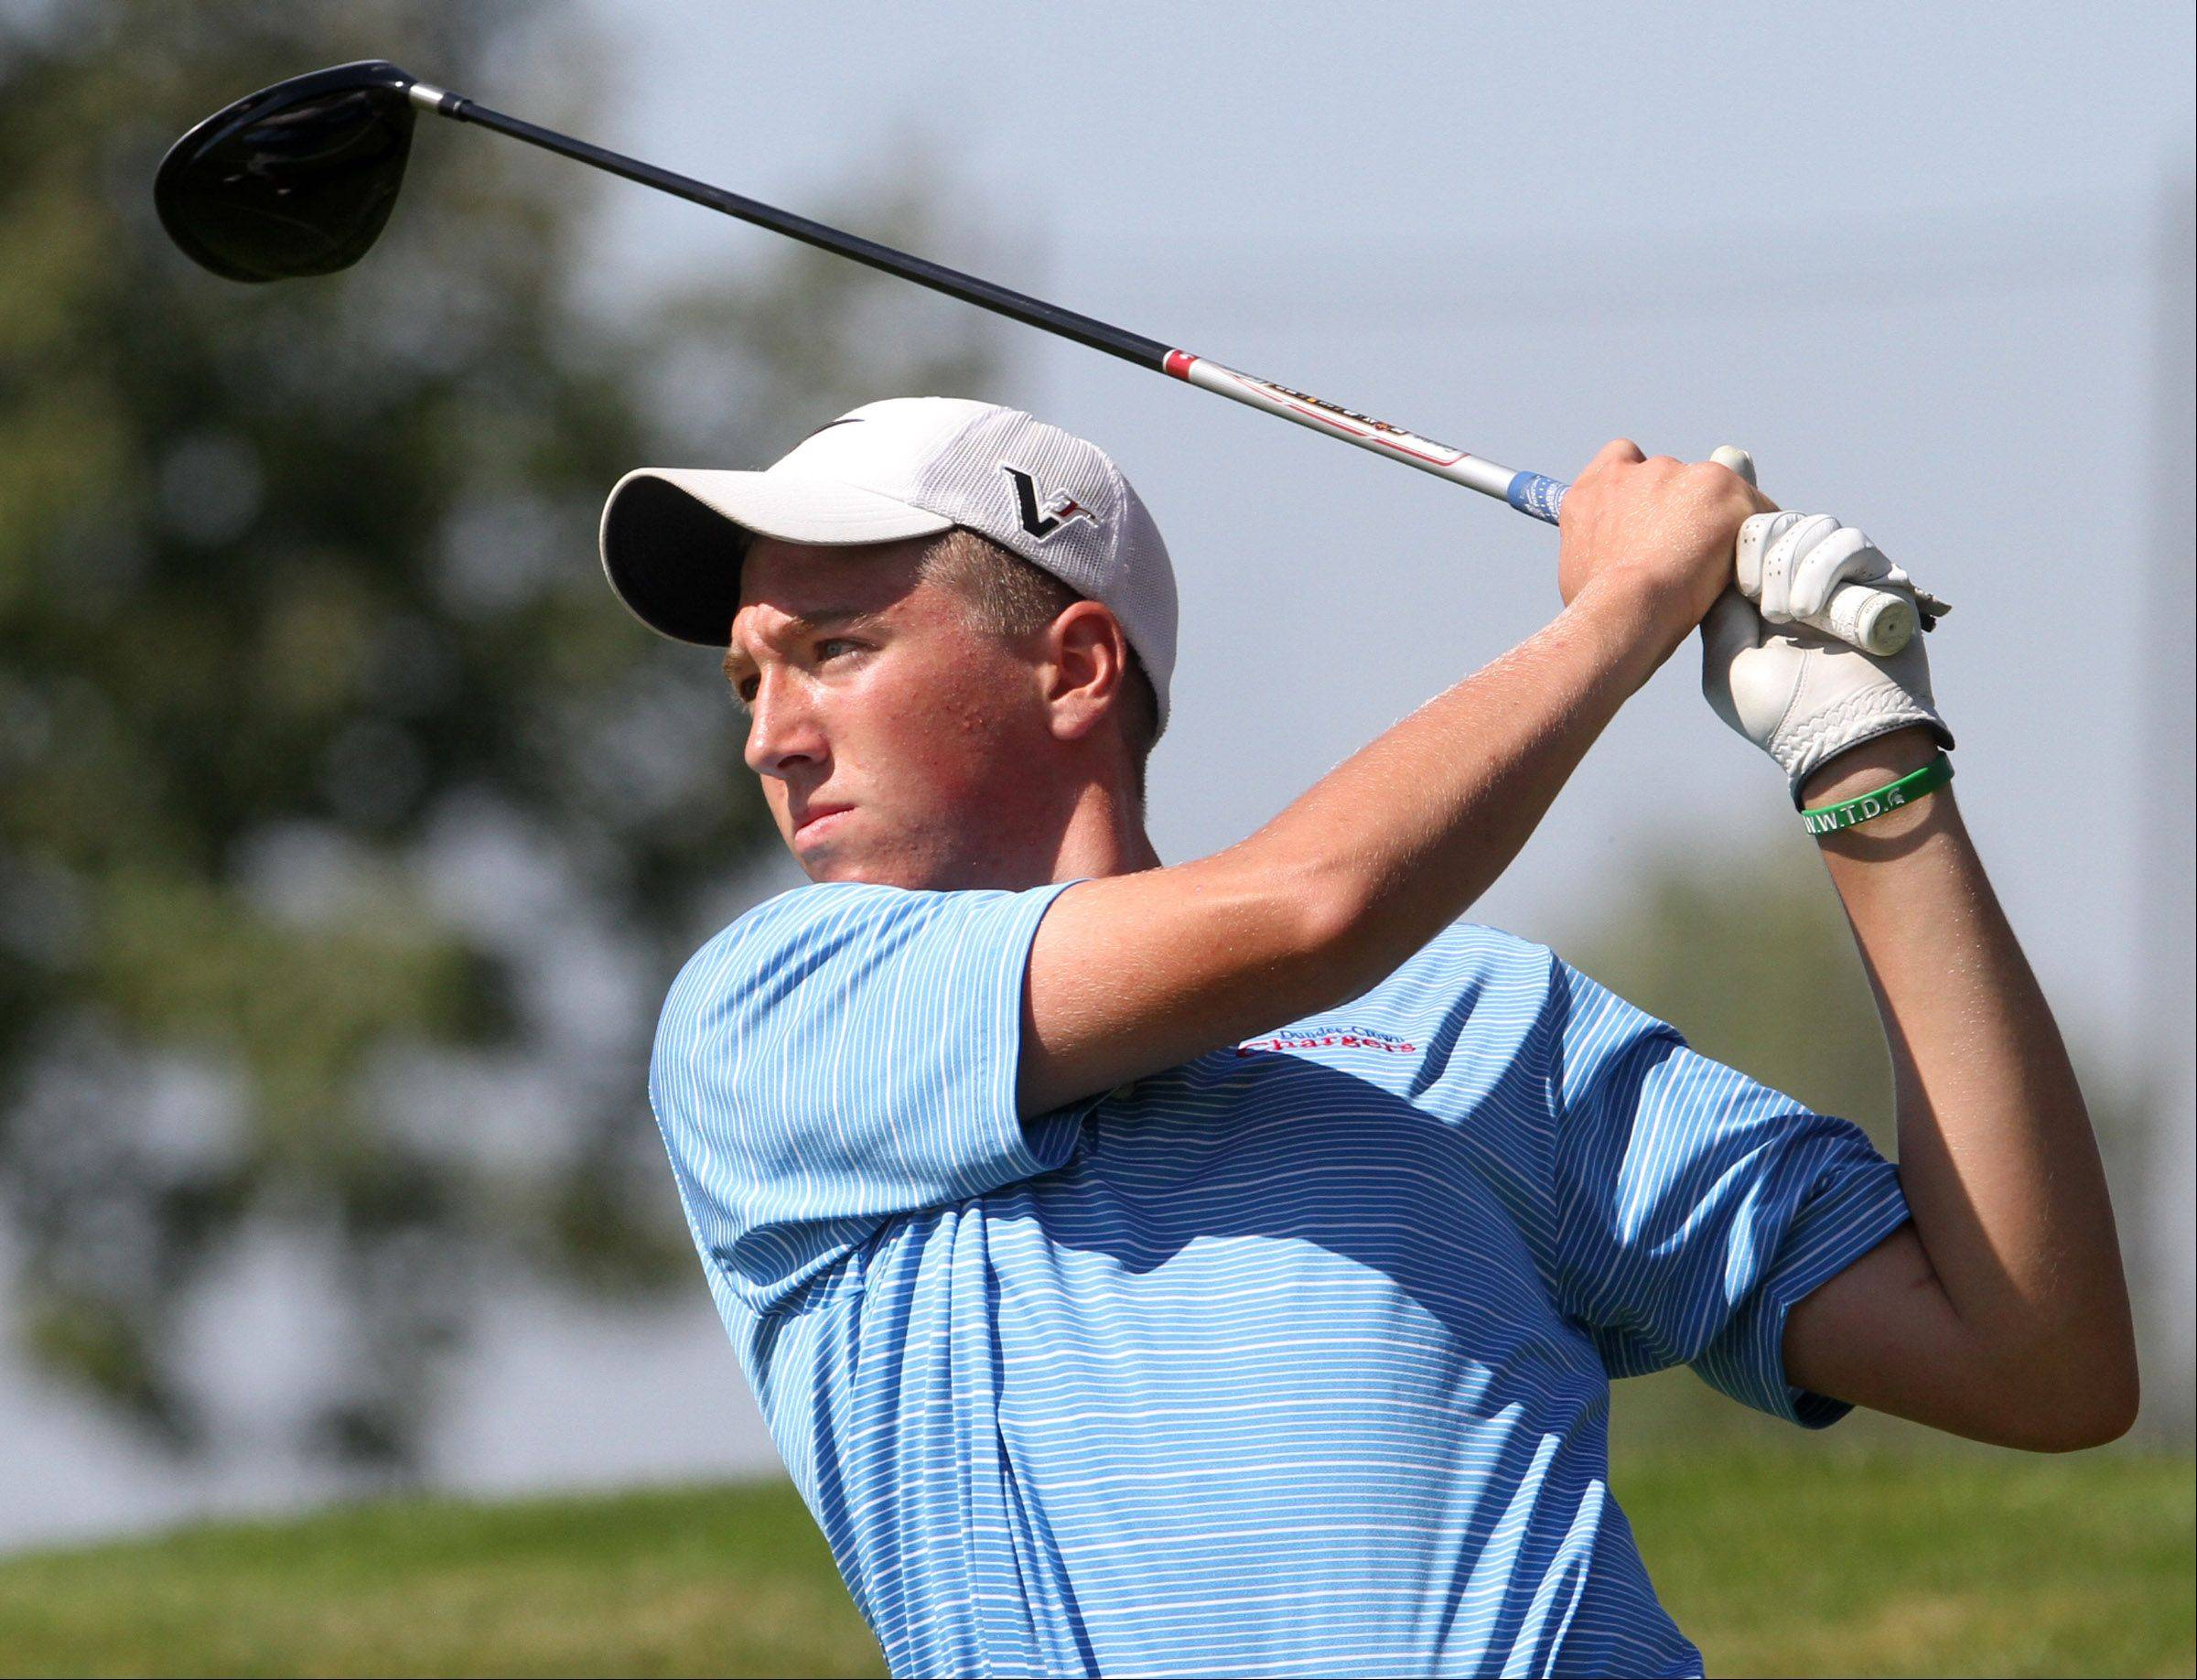 Dundee-Crown's Brenton Bartelt swings on No. in the Charger Classic boys golf invite, hosted by Dundee-Crown High School, at Randall Oaks Golf Club in West Dundee on Saturday.